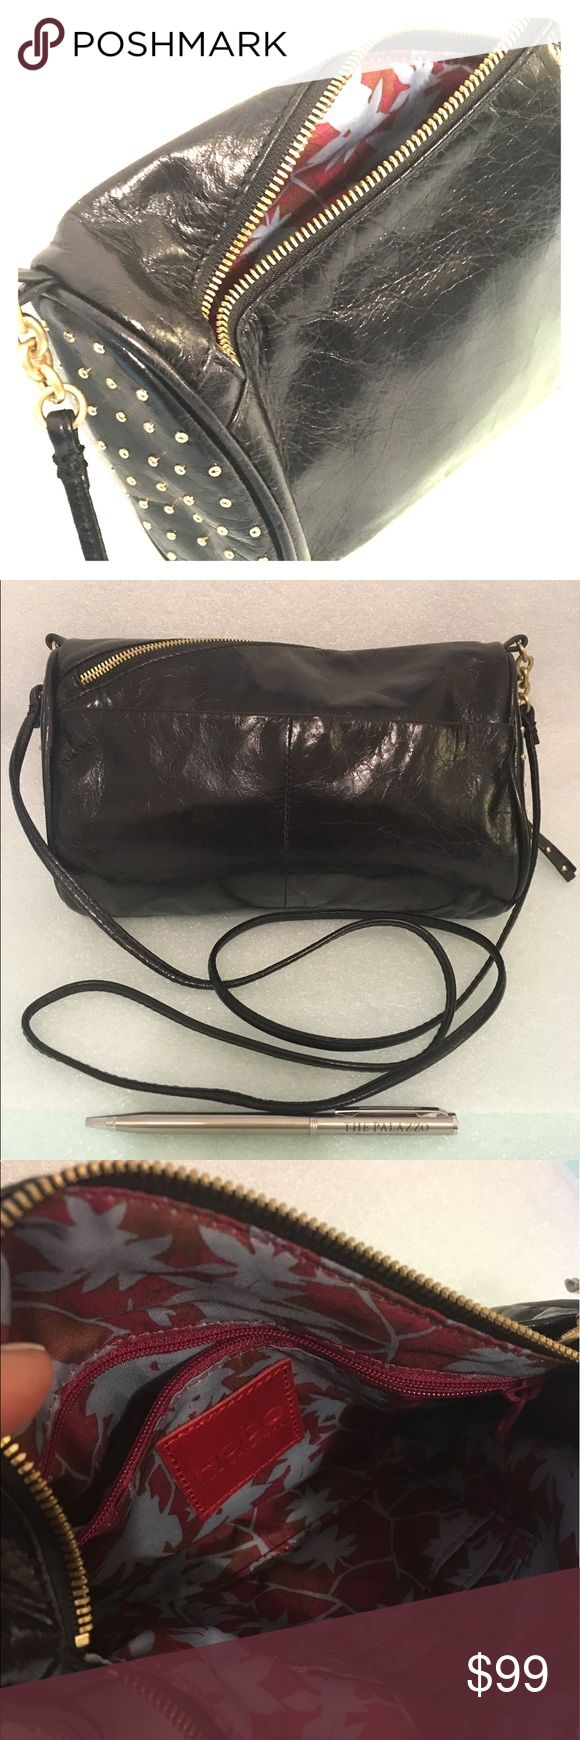 Hobo Original Clancy bag. Hobo Original, Excellent condition WOT. 100% tip grain leather uniquely tumbled for that 'broken in' look. Asymmetrical zipper with gold studded accents and hardware. HOBO Bags Crossbody Bags